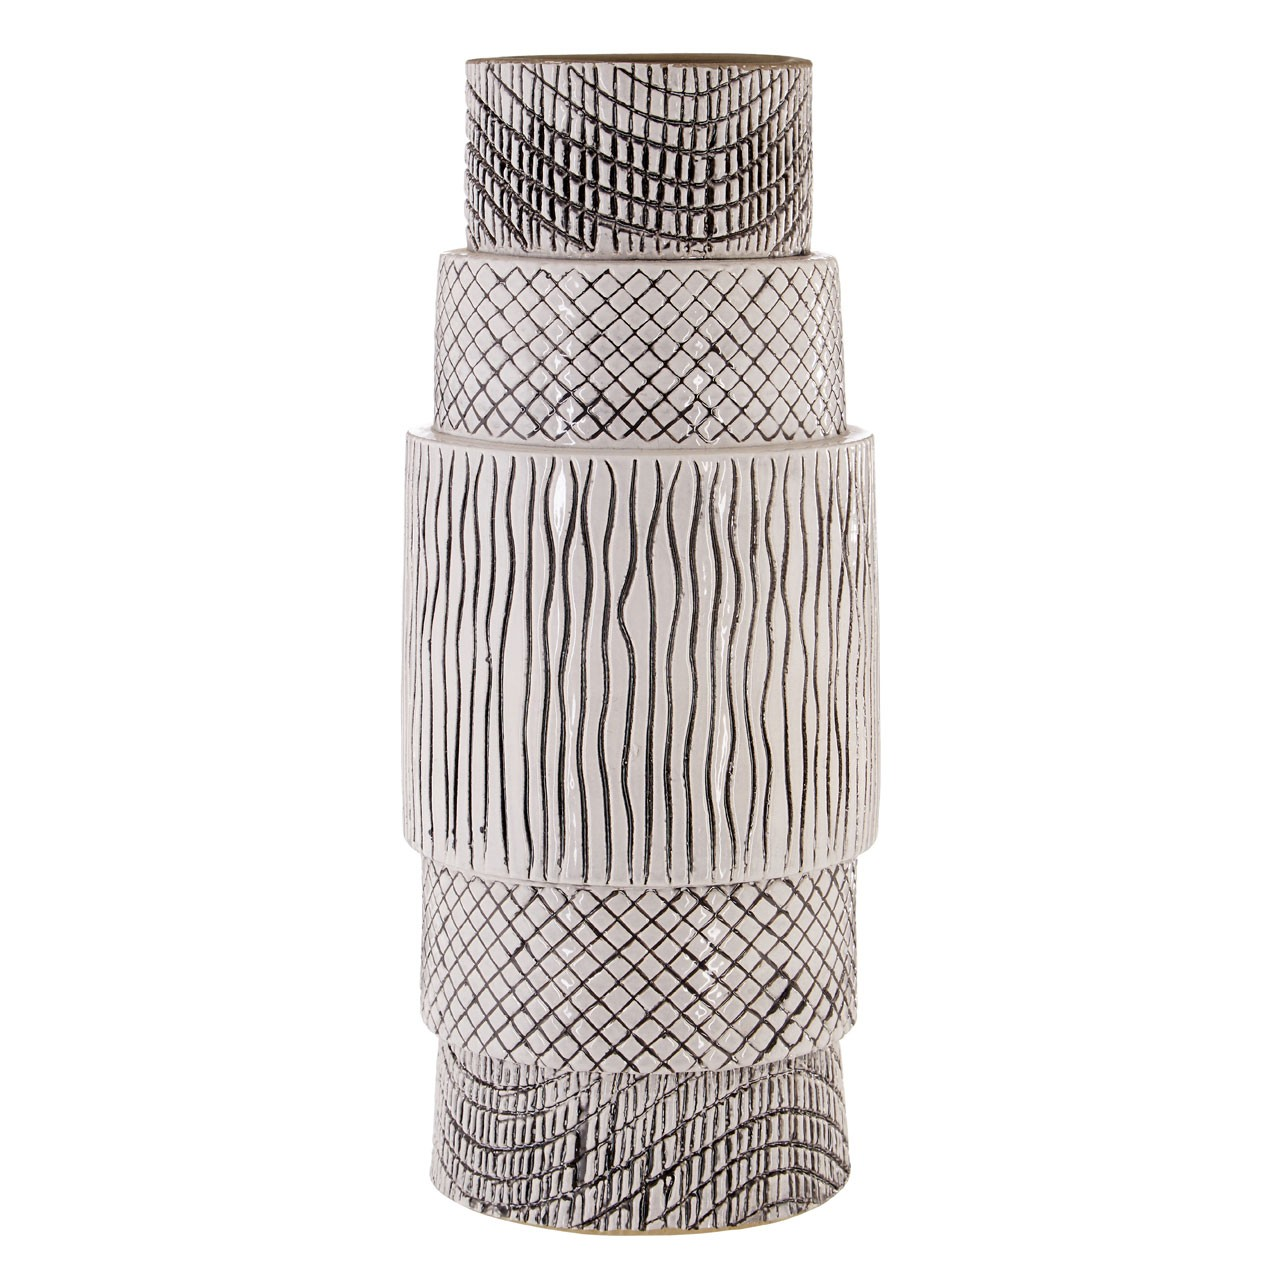 Complements Mono Vase Stylish For Home Office